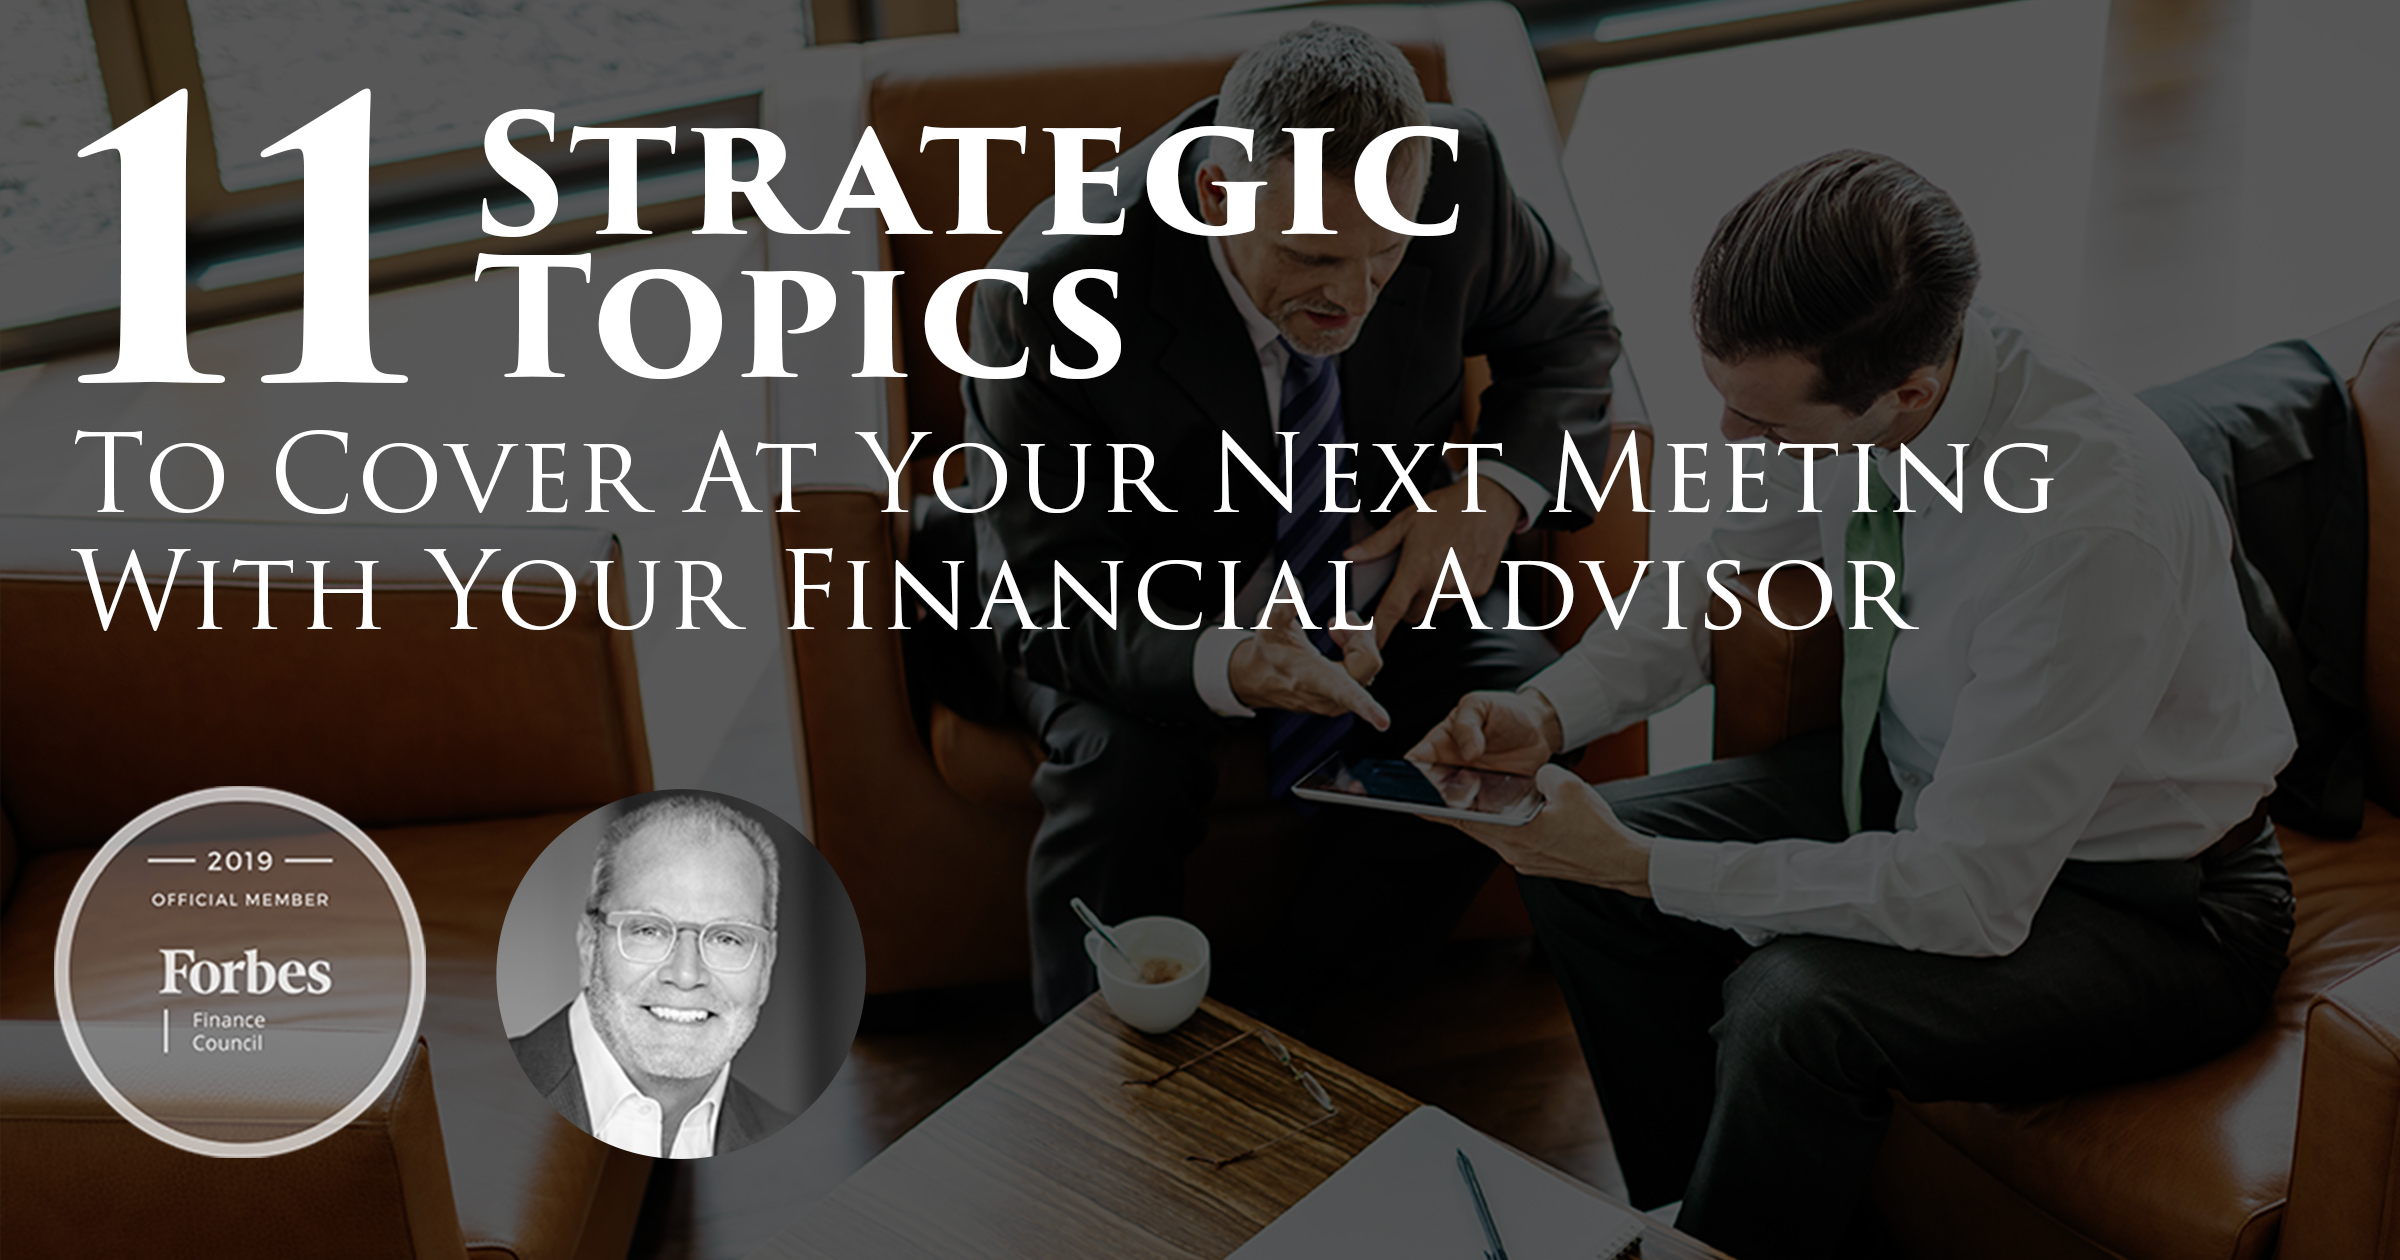 11 Strategic Topics To Cover At Your Next Meeting With Your Financial Advisor